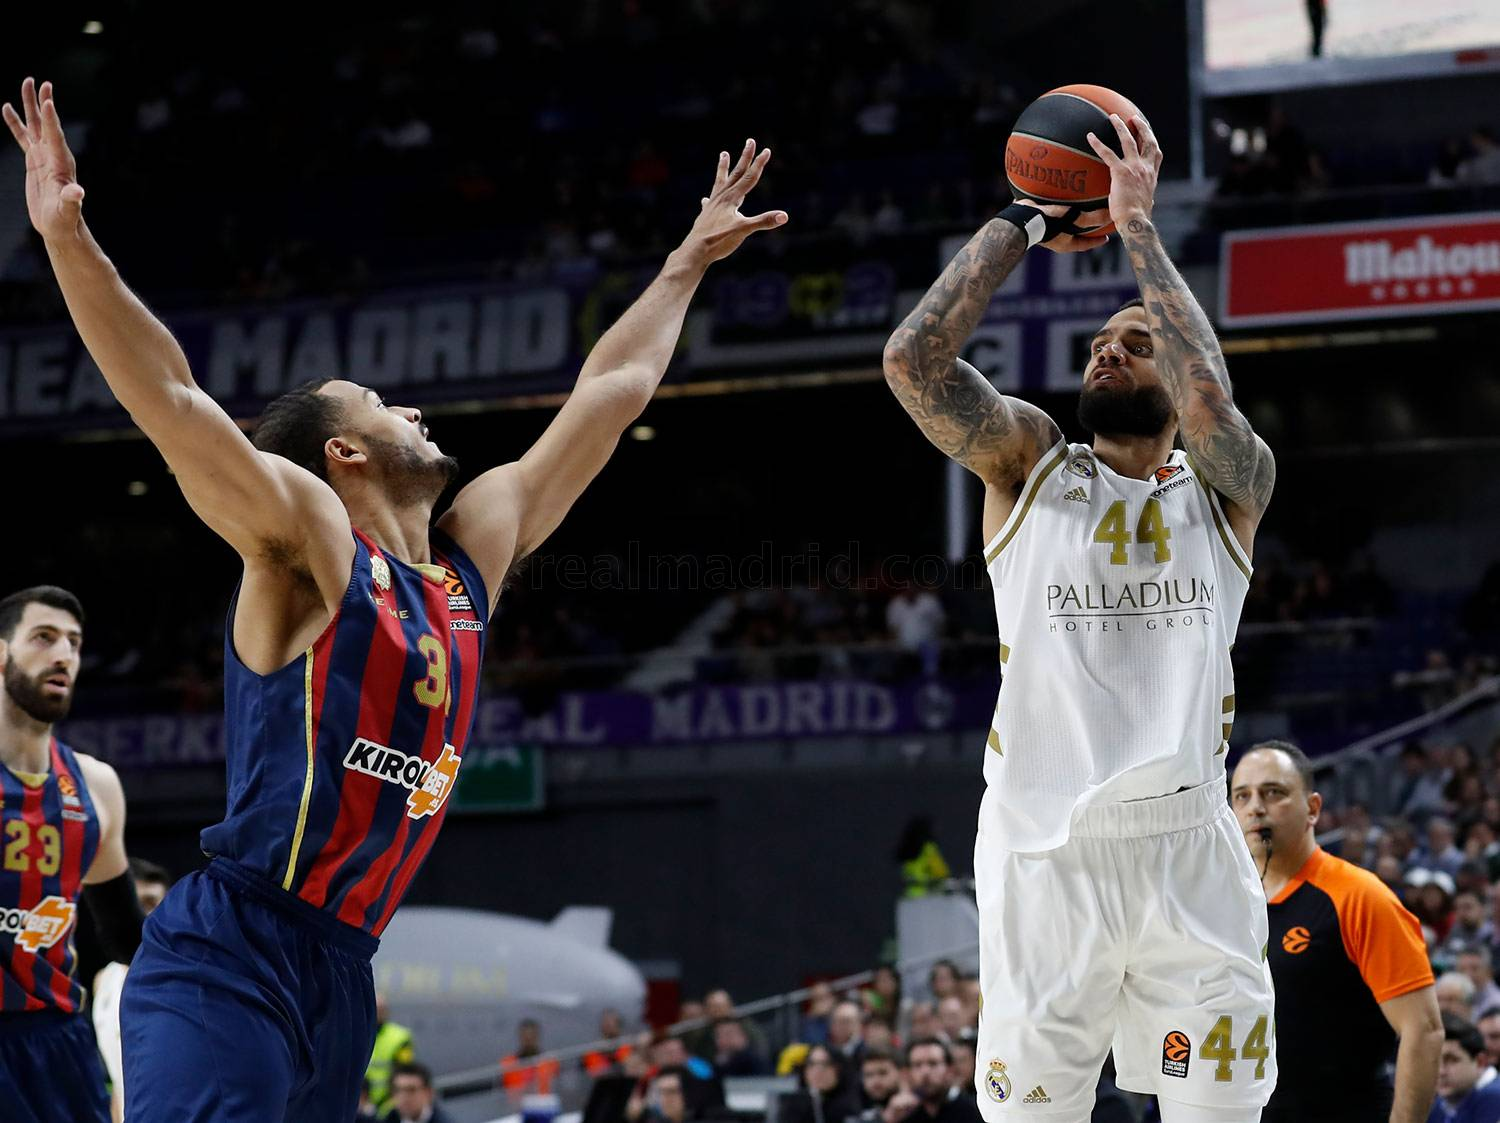 Real Madrid - Real Madrid - KIROLBET Baskonia - 05-02-2020